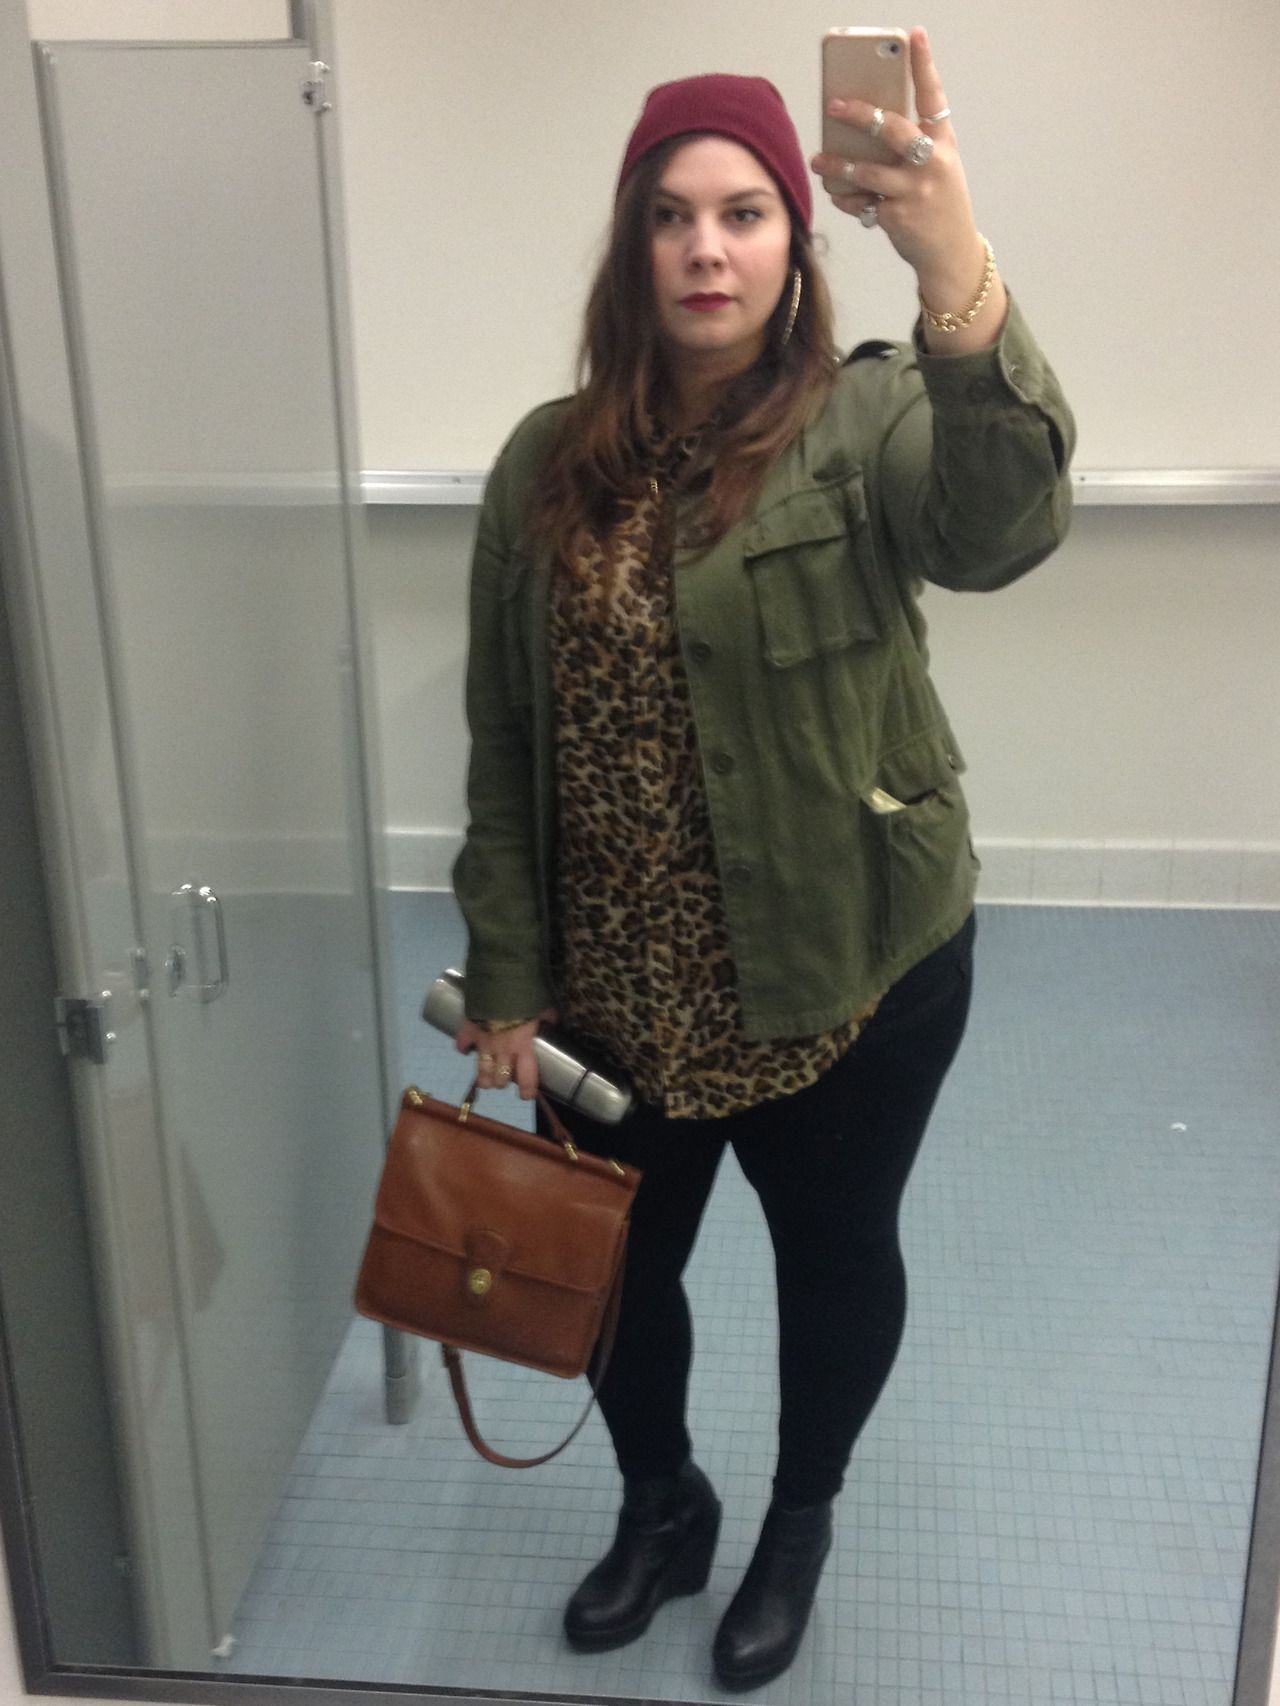 Too Fat To Be Hipster | Plus Size Fashion | Pinterest | Hipsters Clothes and Grunge